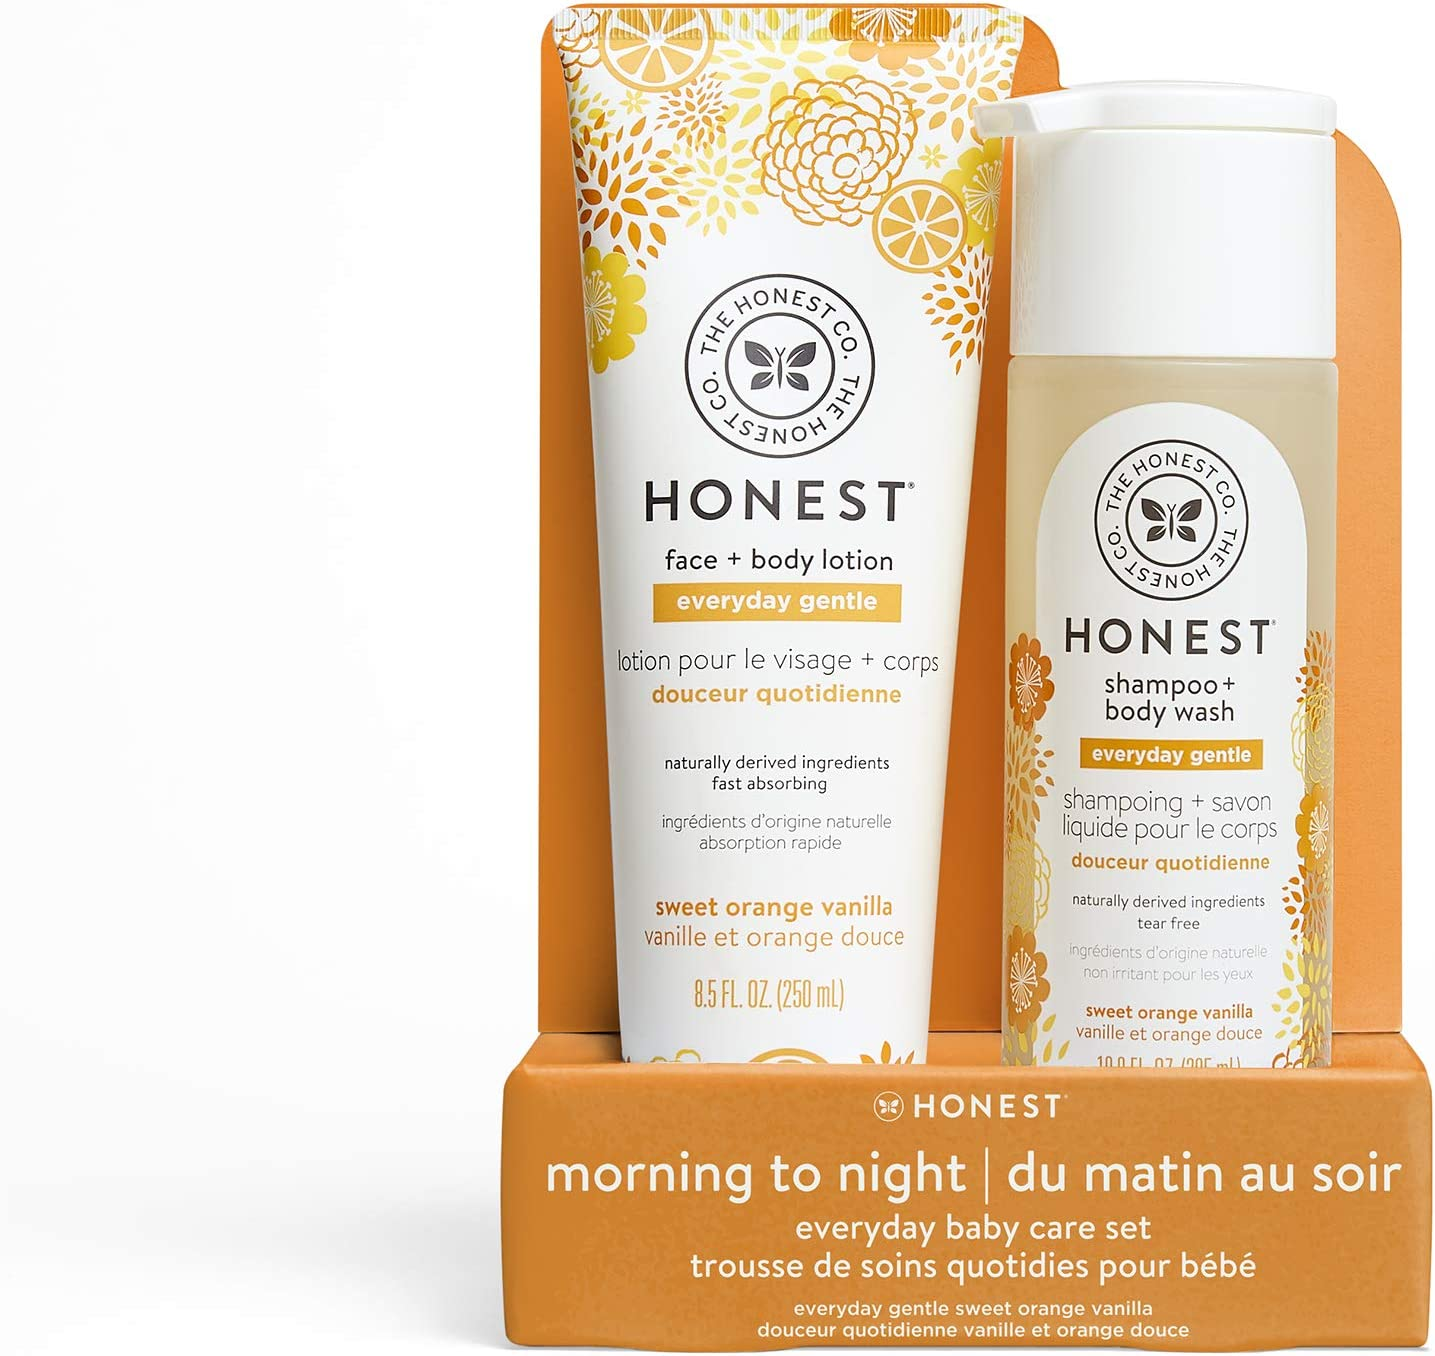 The Honest Company 2Piece Sweet Orange Vanilla Shampoo + Body Wash (10 Fl. Oz.) Face + Body Lotion (8.5 Fl. Oz.) Bundle | Tear Free | Naturally Derived Ingredients | sulfate & Paraben Free Baby Bath